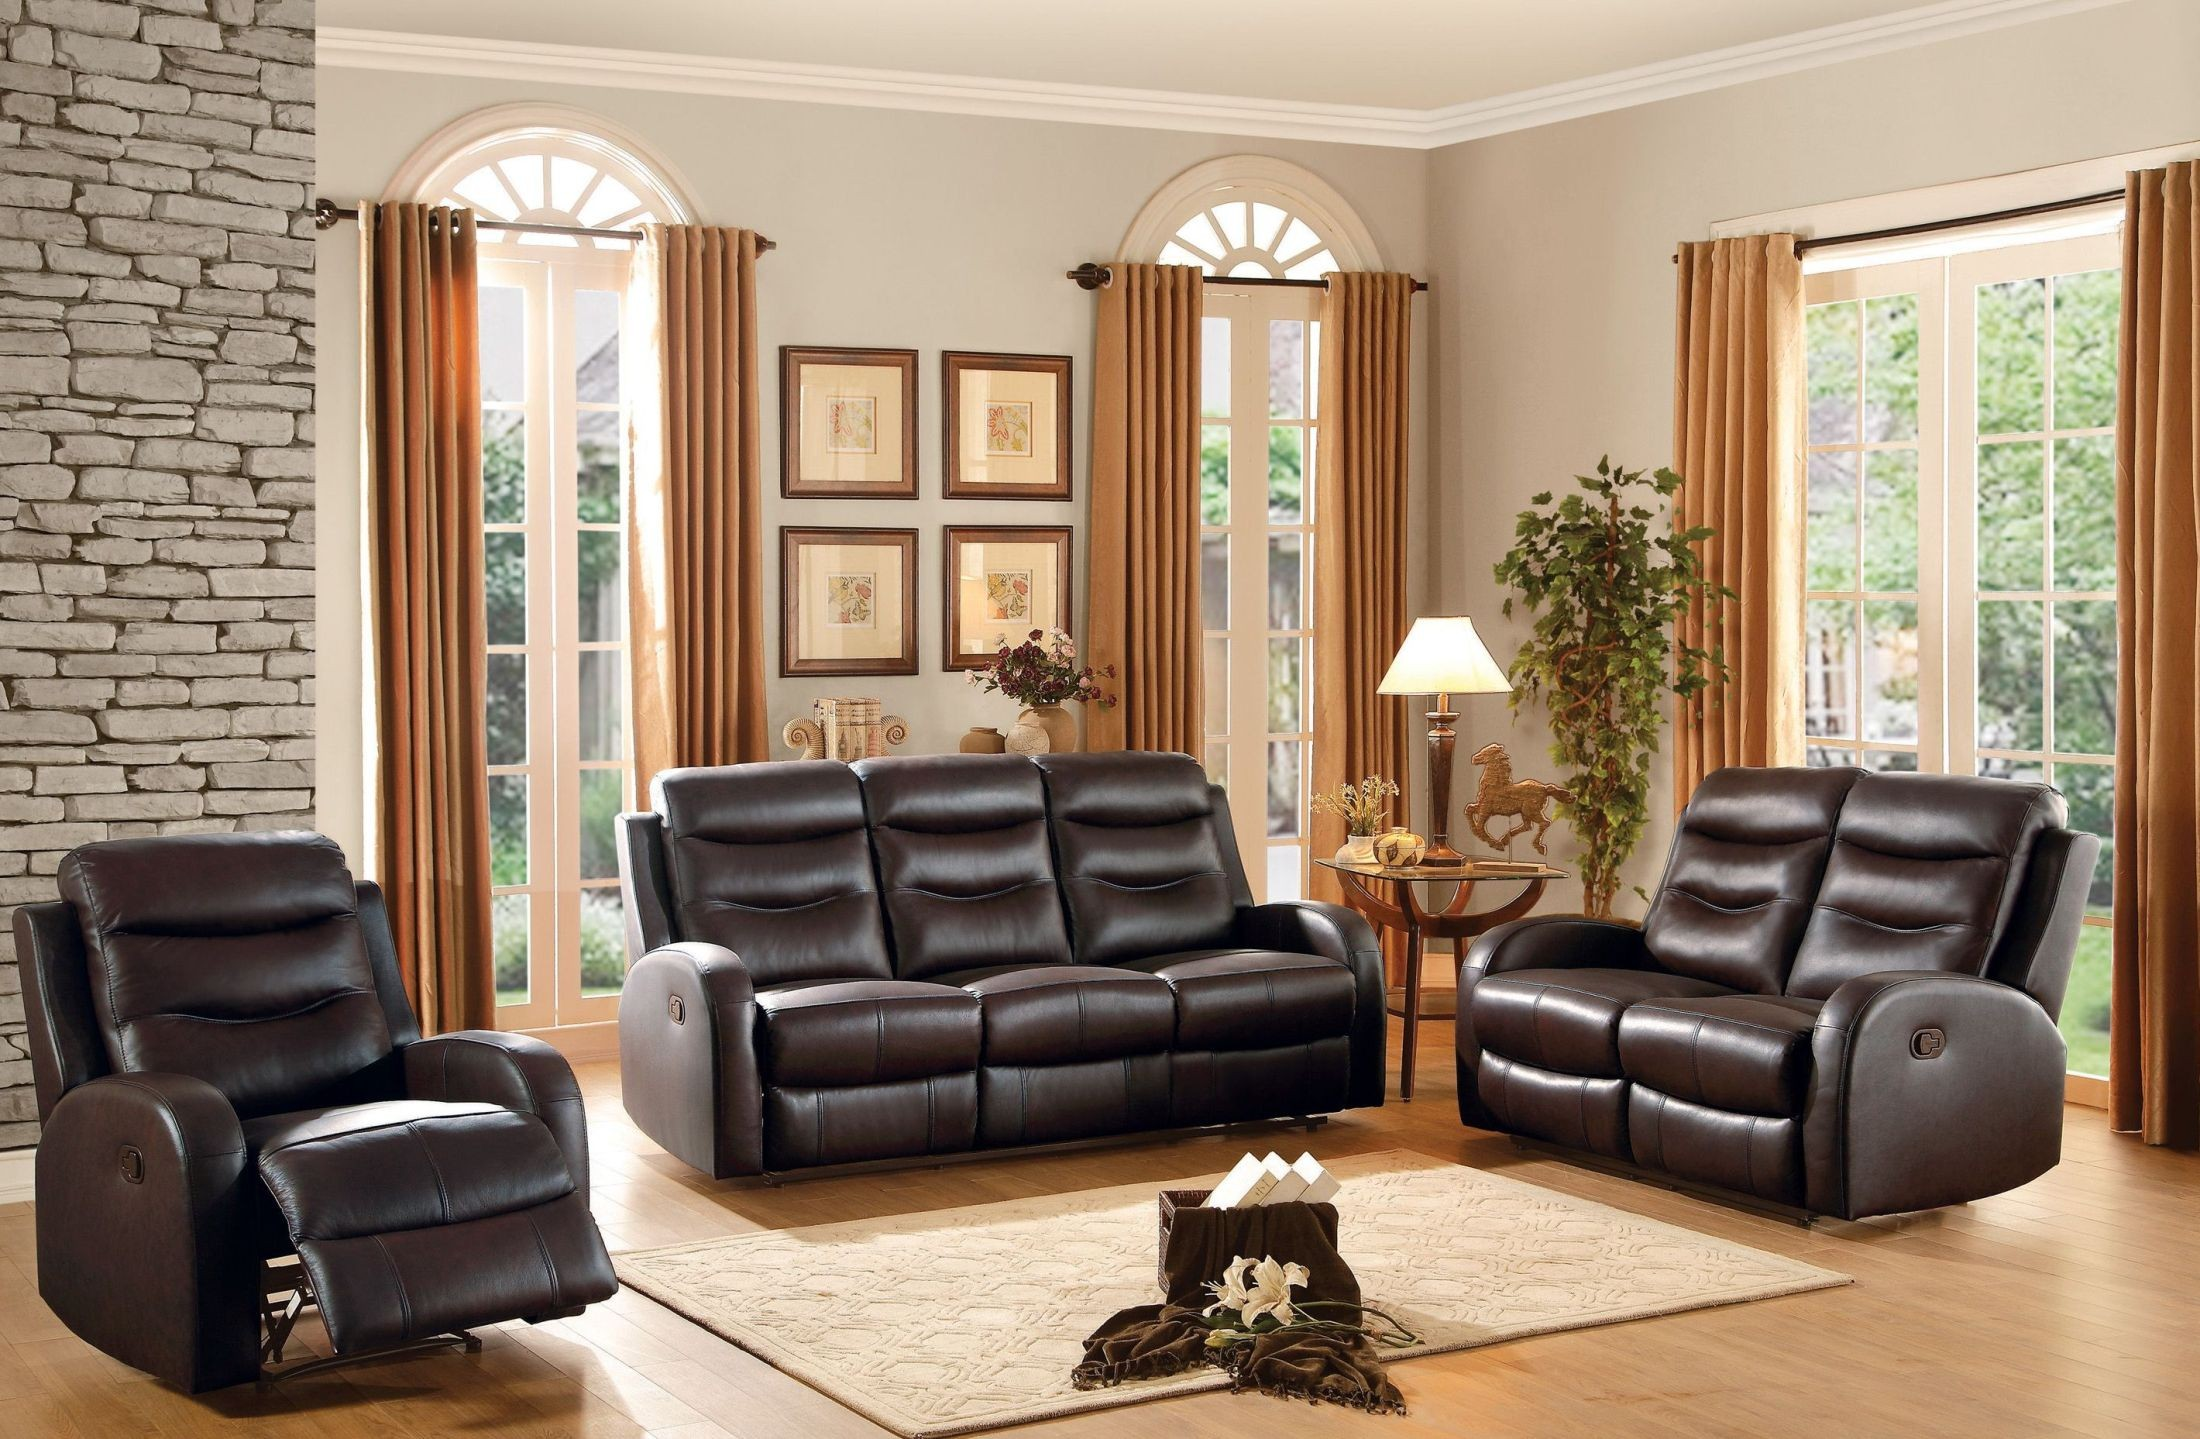 Coppins brown double reclining living room set 2343457 for Double chairs for living room